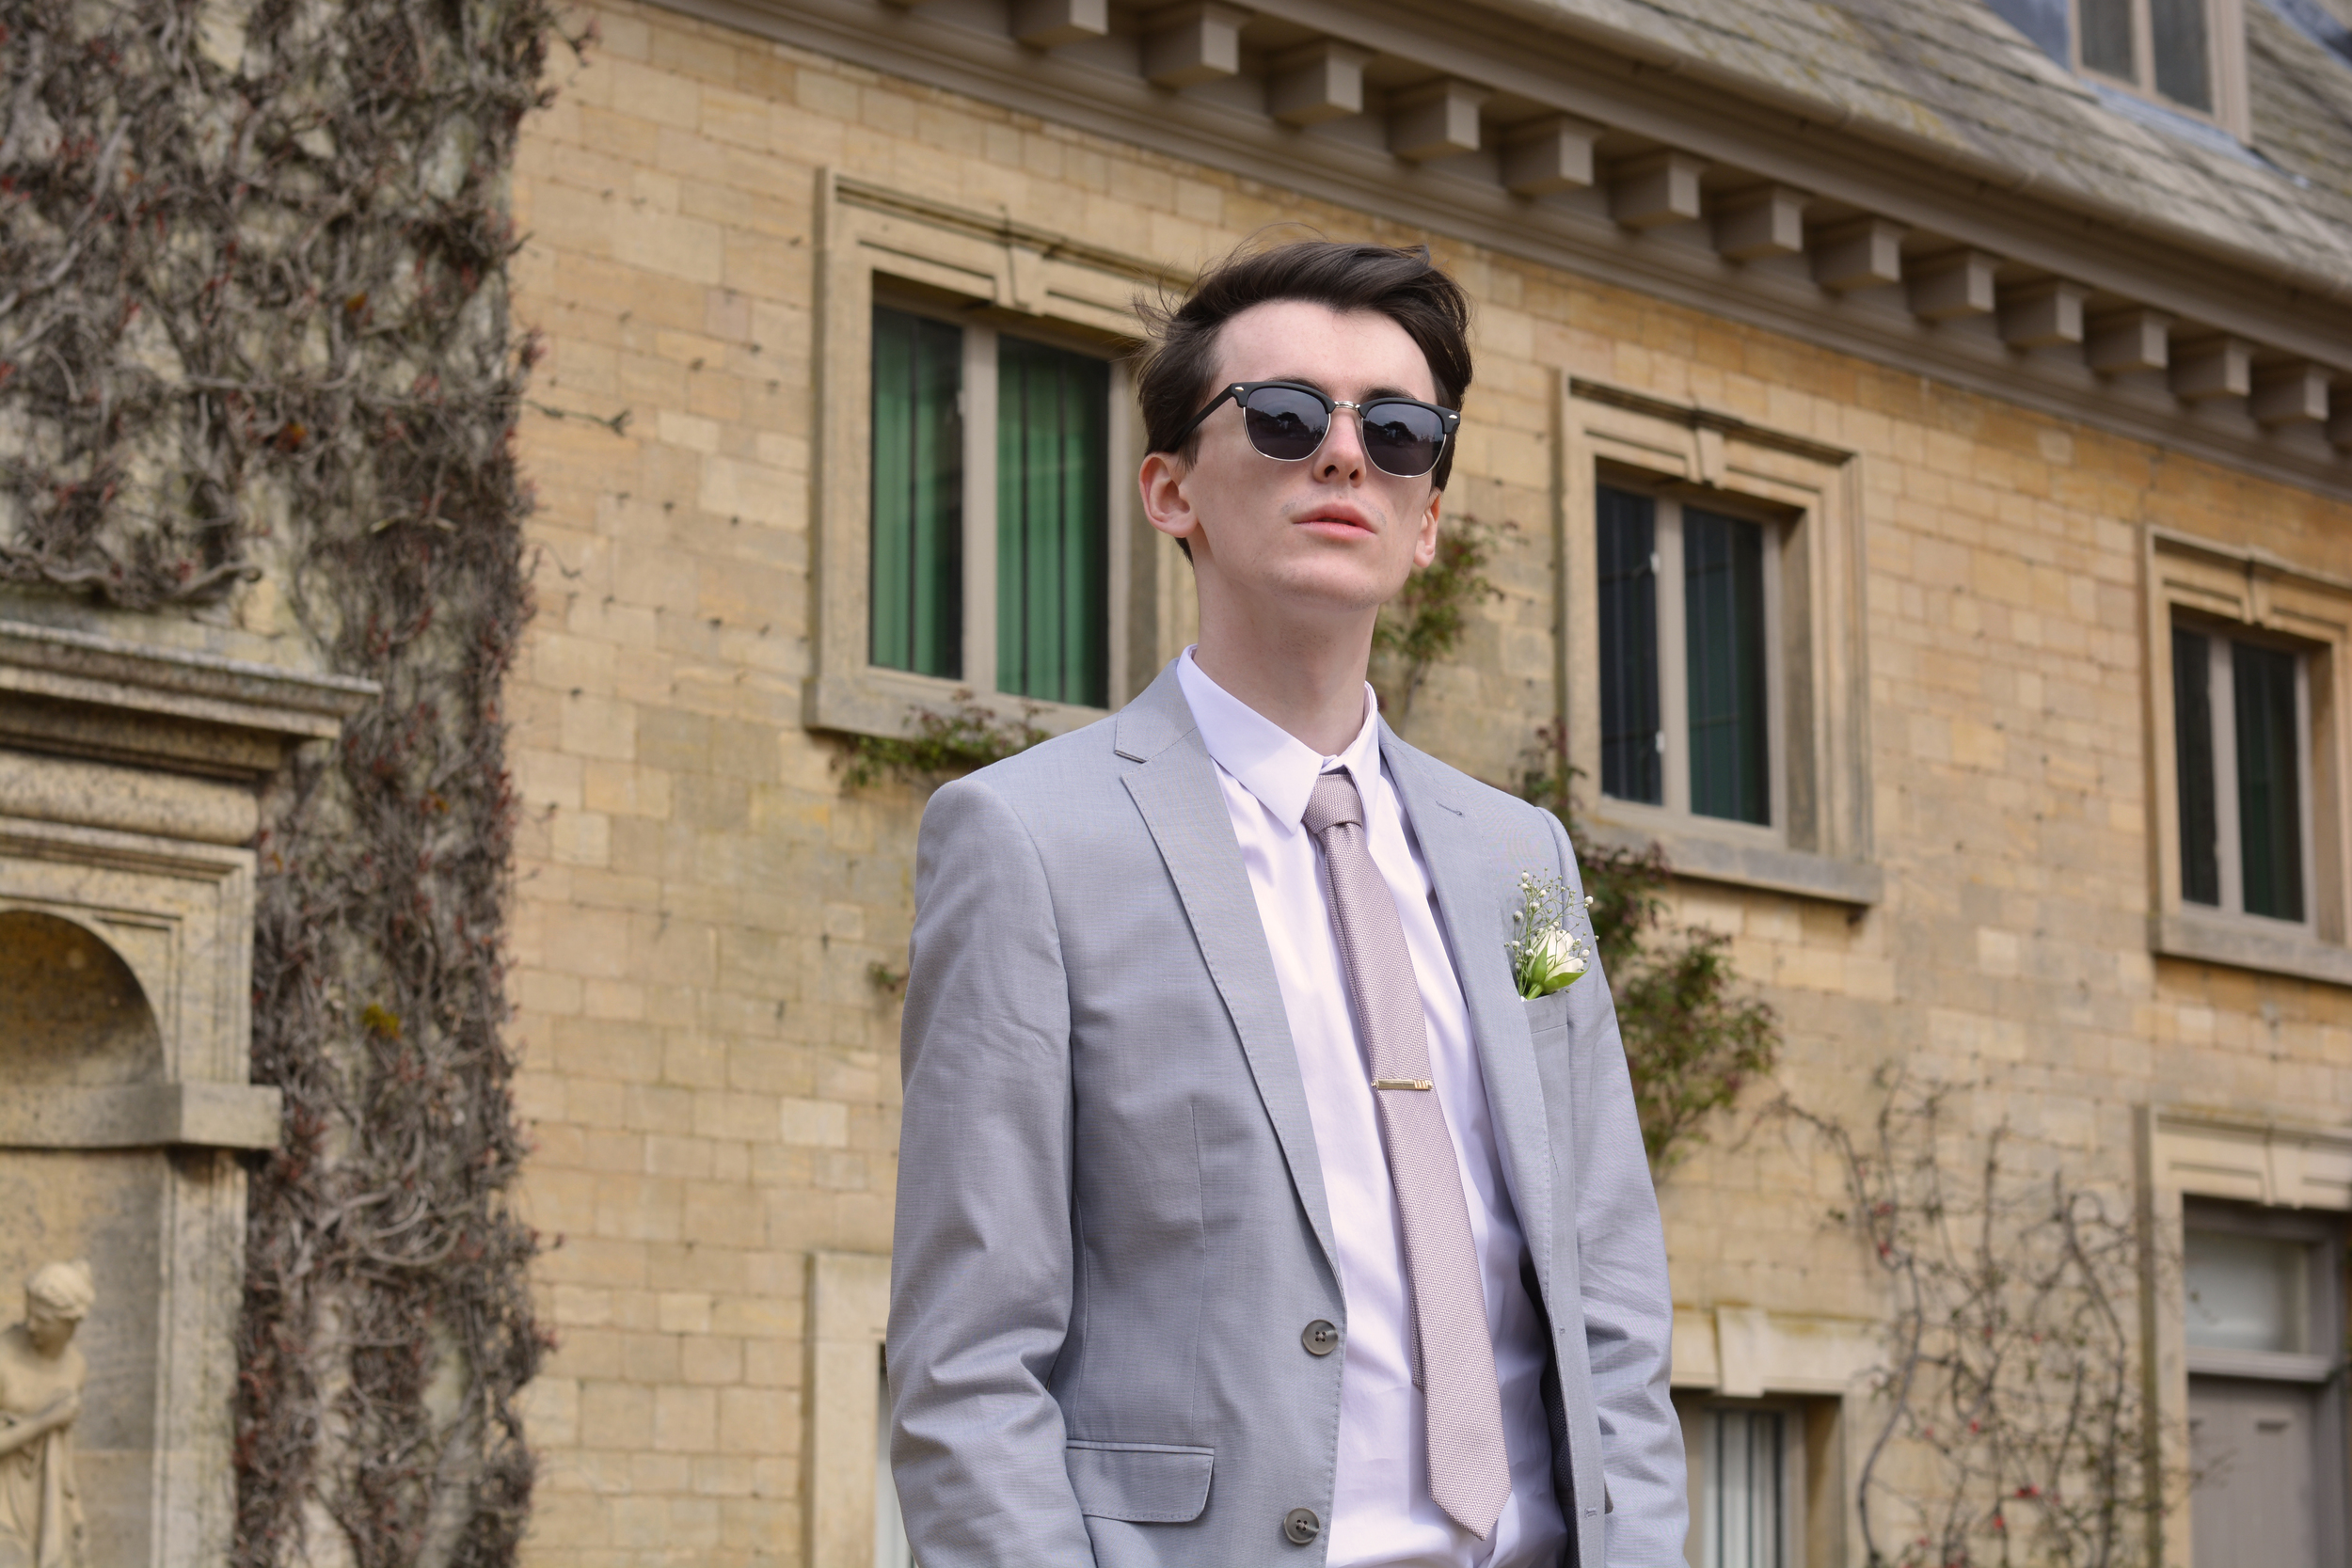 Burton Menswear Suit | Sam Squire UK male fashion blogger